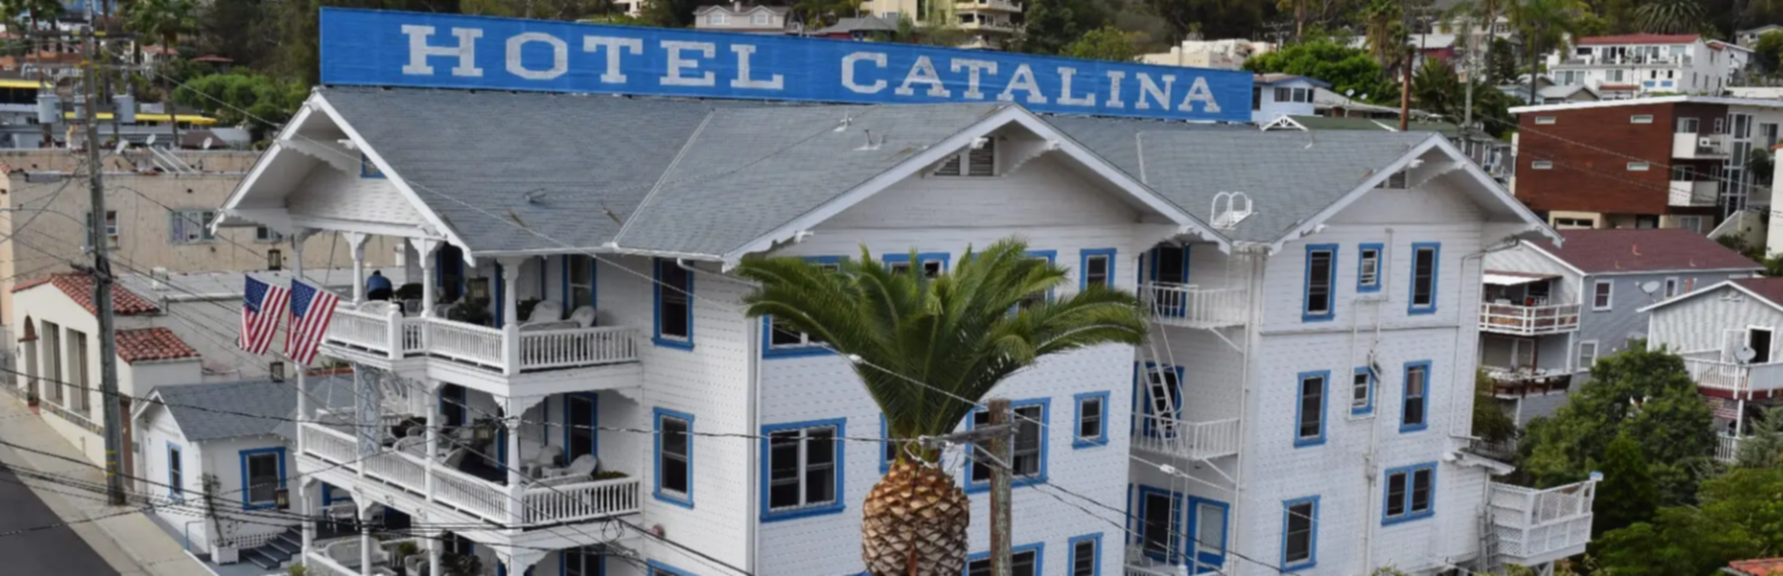 A large white building at Hotel Catalina.